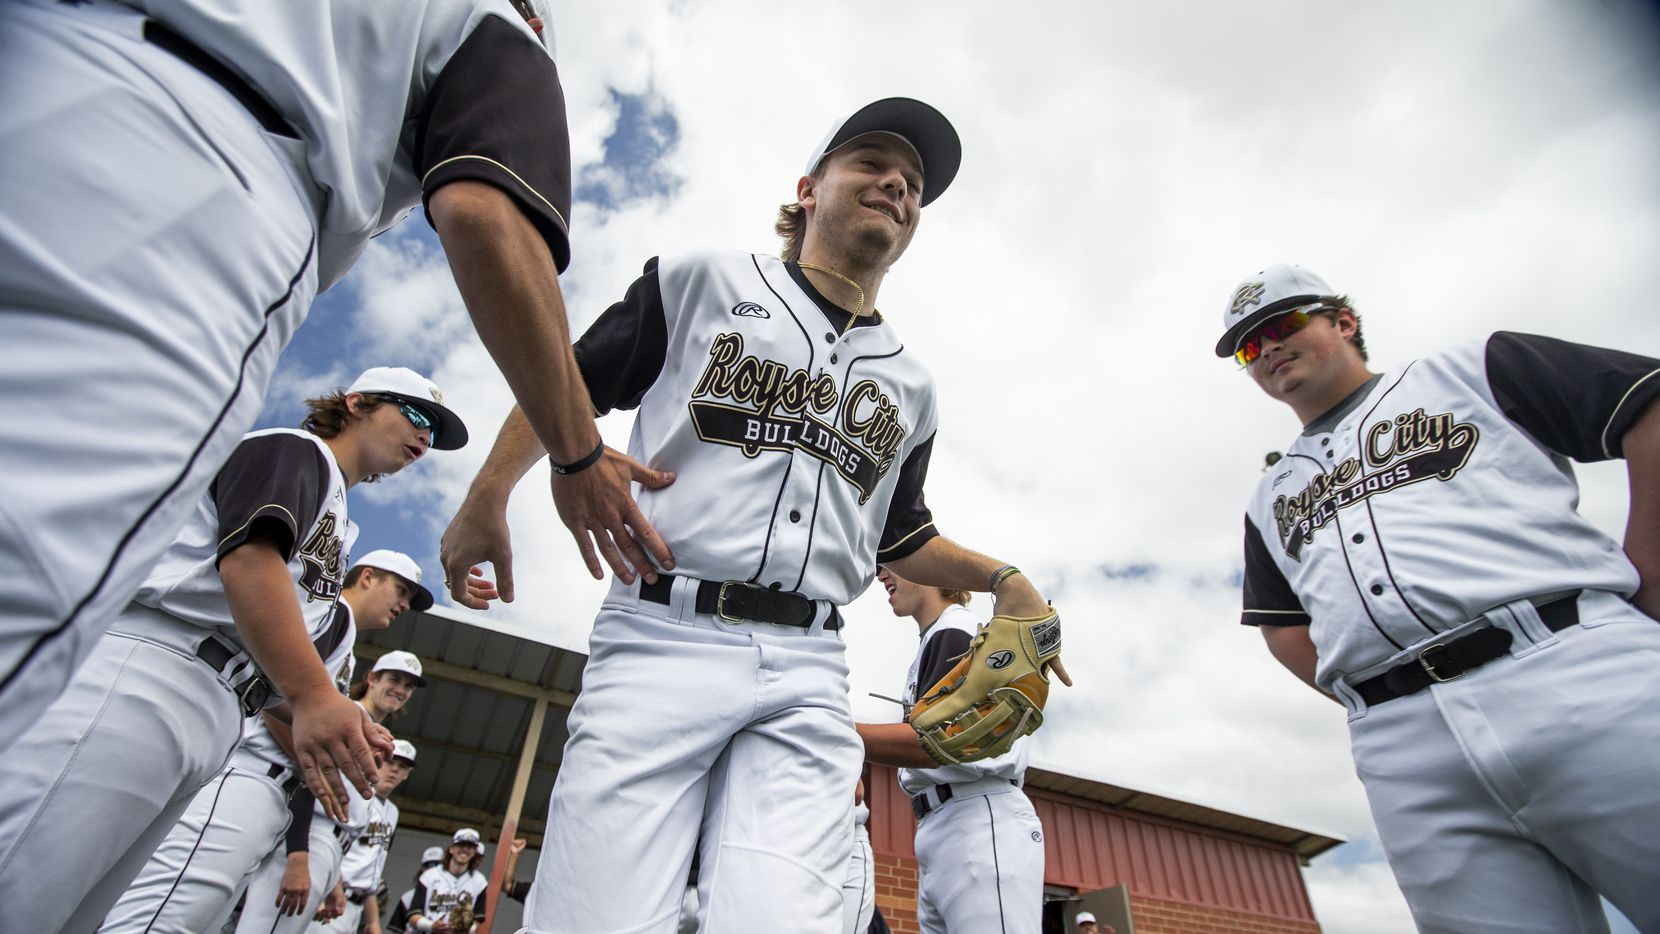 Gavin Lynch, 18, slaps hands with his teammates during player introductions before a high school baseball game at Royse City High School, Saturday, April 24, 2021. Lynch broke through has a key player for the baseball team last year as a junior, but COVID-19 ended the season early. It turns out it would be his last baseball season. For the majority of his life, Gavin has had a kidney condition that he and his family knew would ultimately lead to kidney failure. They just didn't know when. It happened this year. He's been going to dialysis 3-4 times a week for months and the only thing that could fix that is a new kidney.